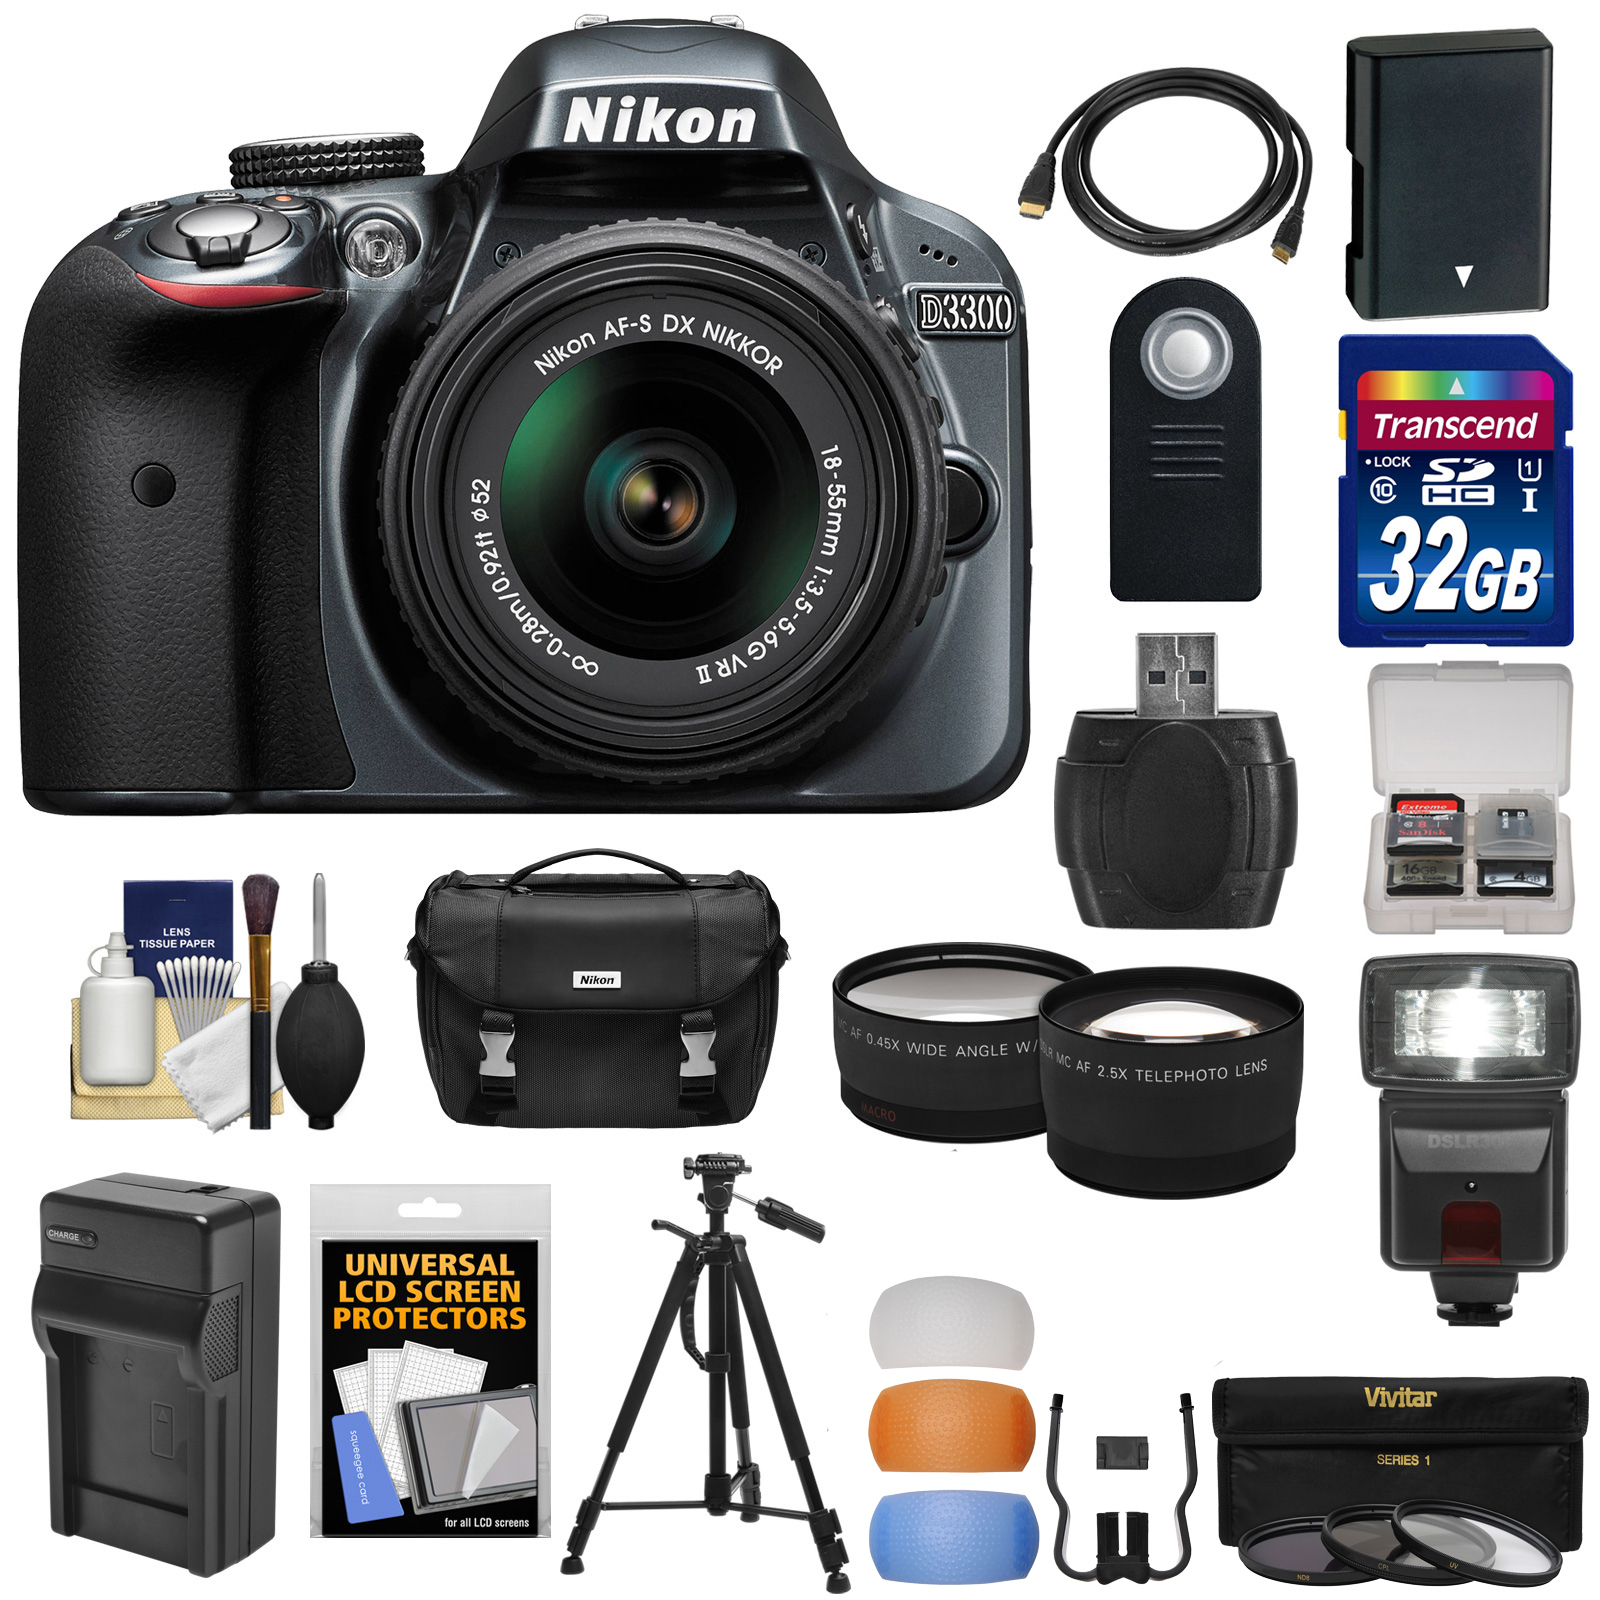 Nikon D3300 Digital SLR Camera & 18-55mm G VR DX II AF-S Zoom Lens (Grey) with 32GB Card + Battery & Charger + Case + Tripod + Flash + Tele/Wide Lens Kit